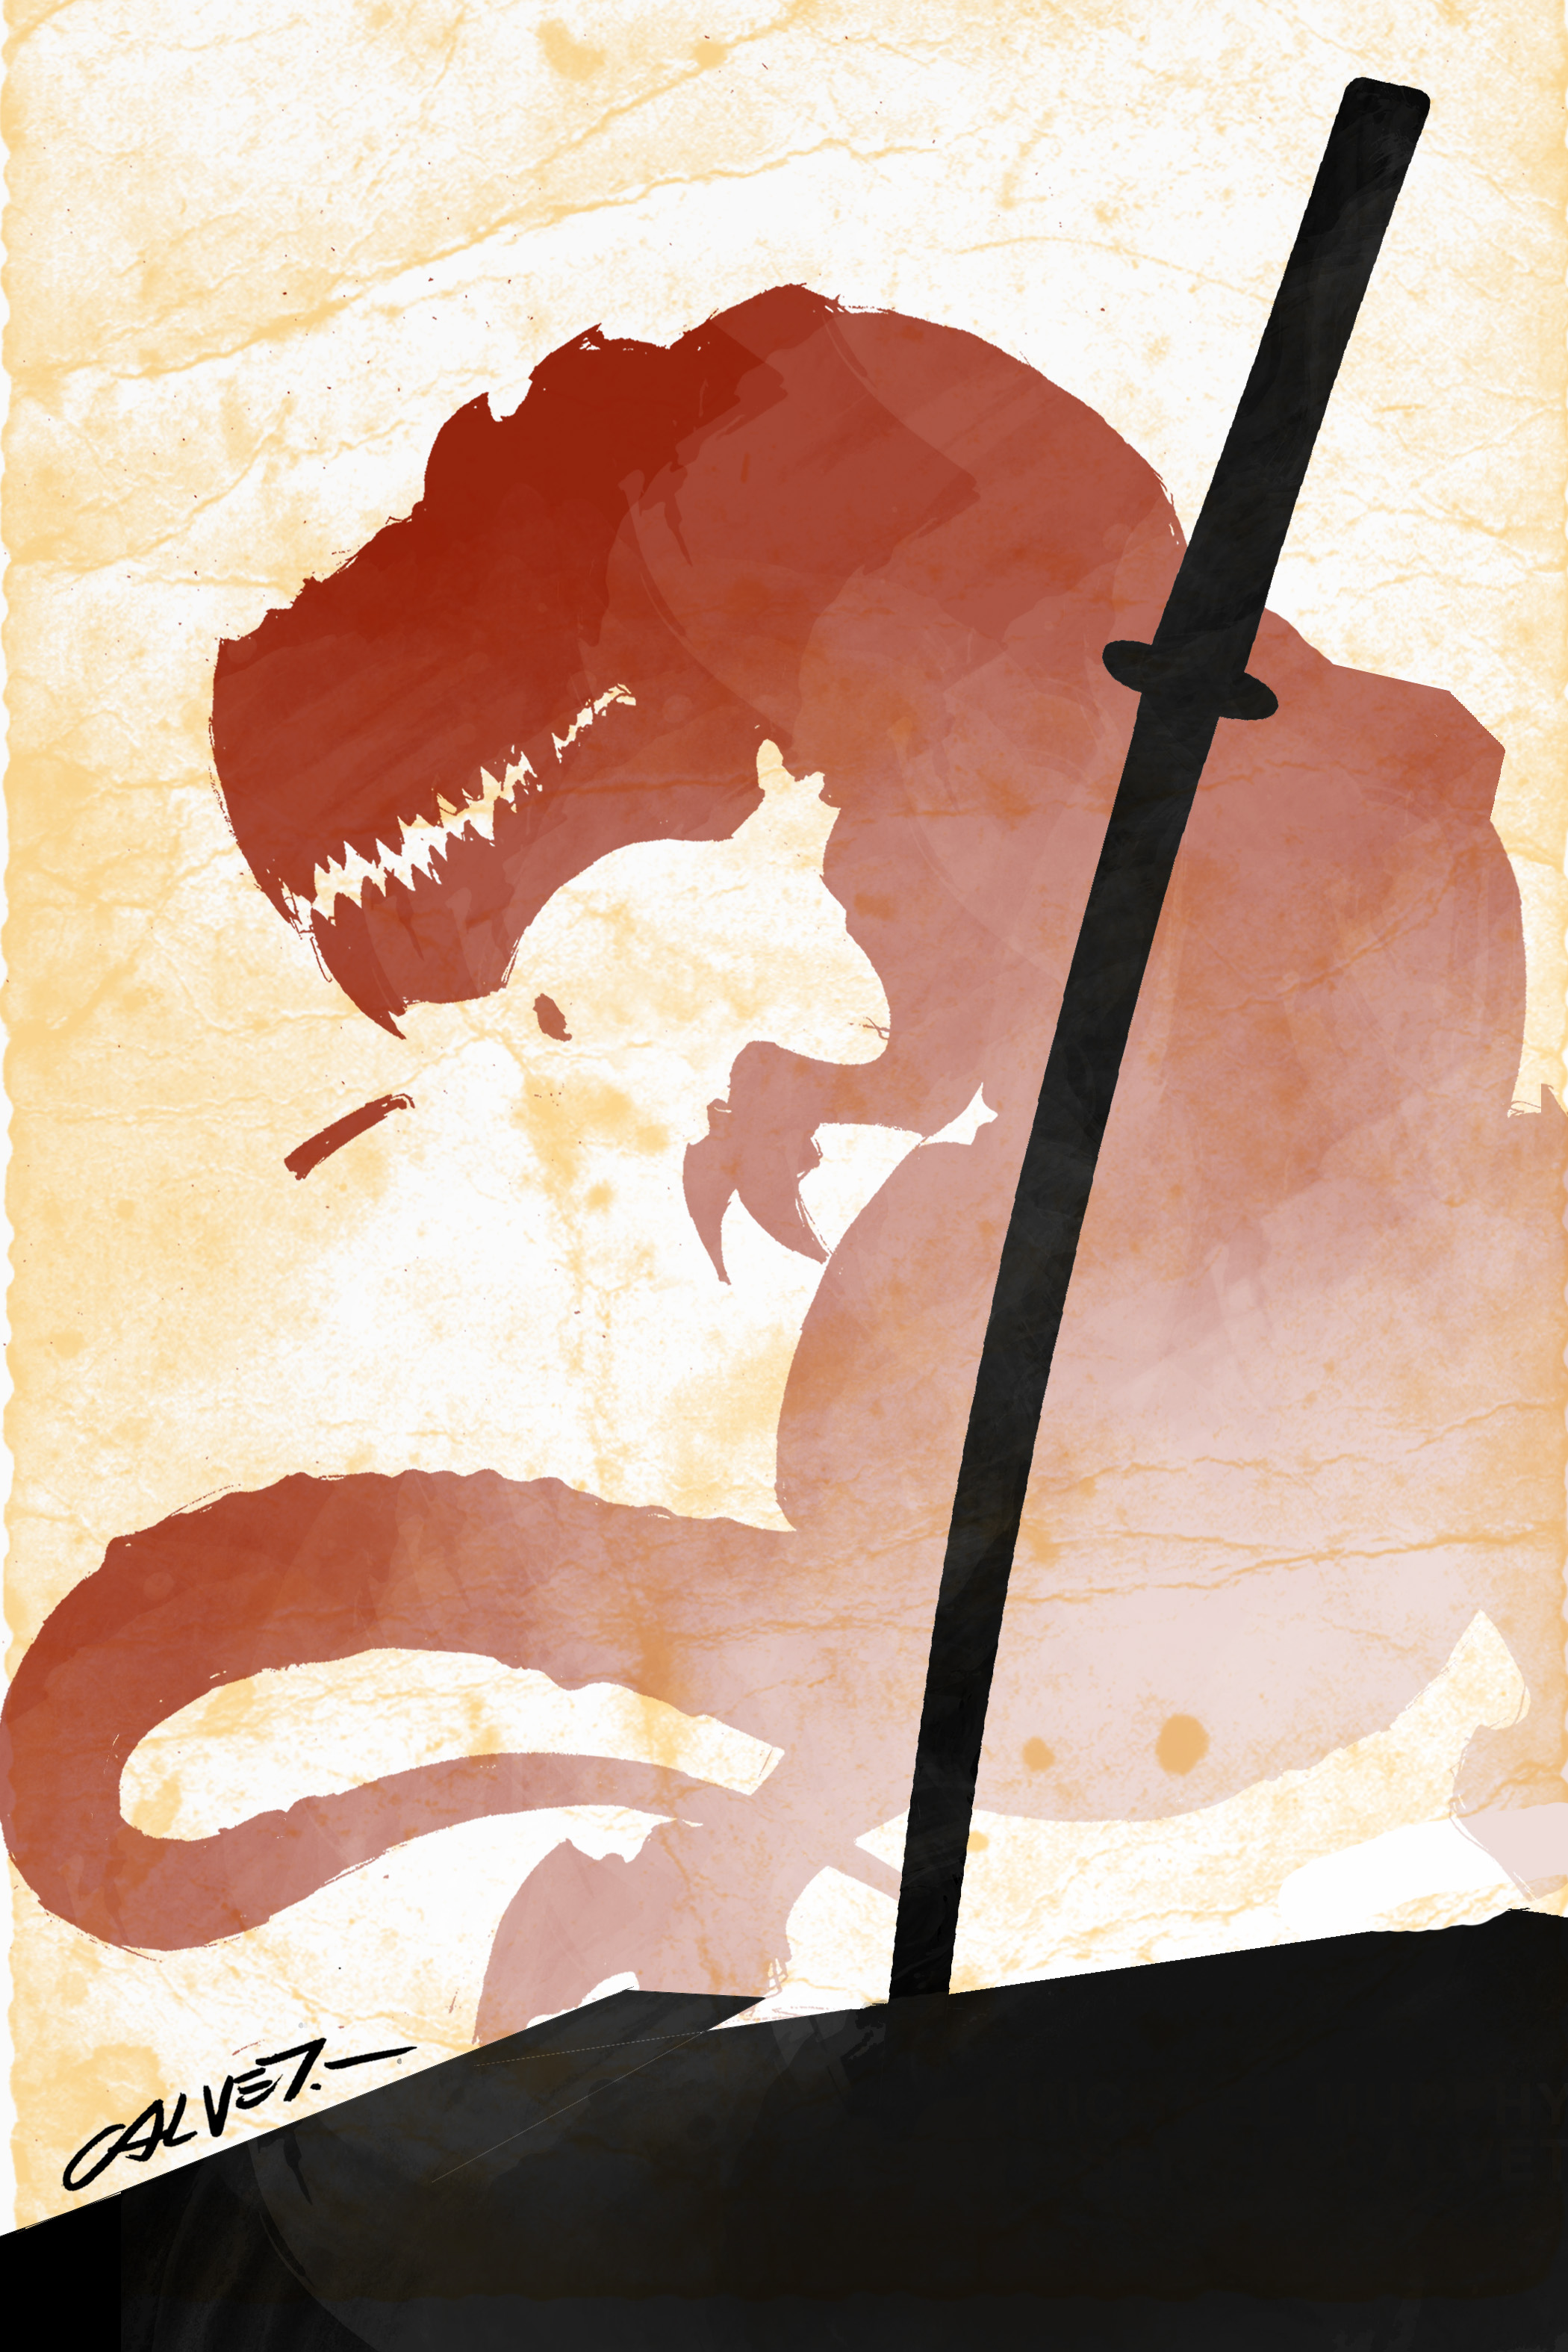 Samurai And Dinosaurs: A Graphic Novel